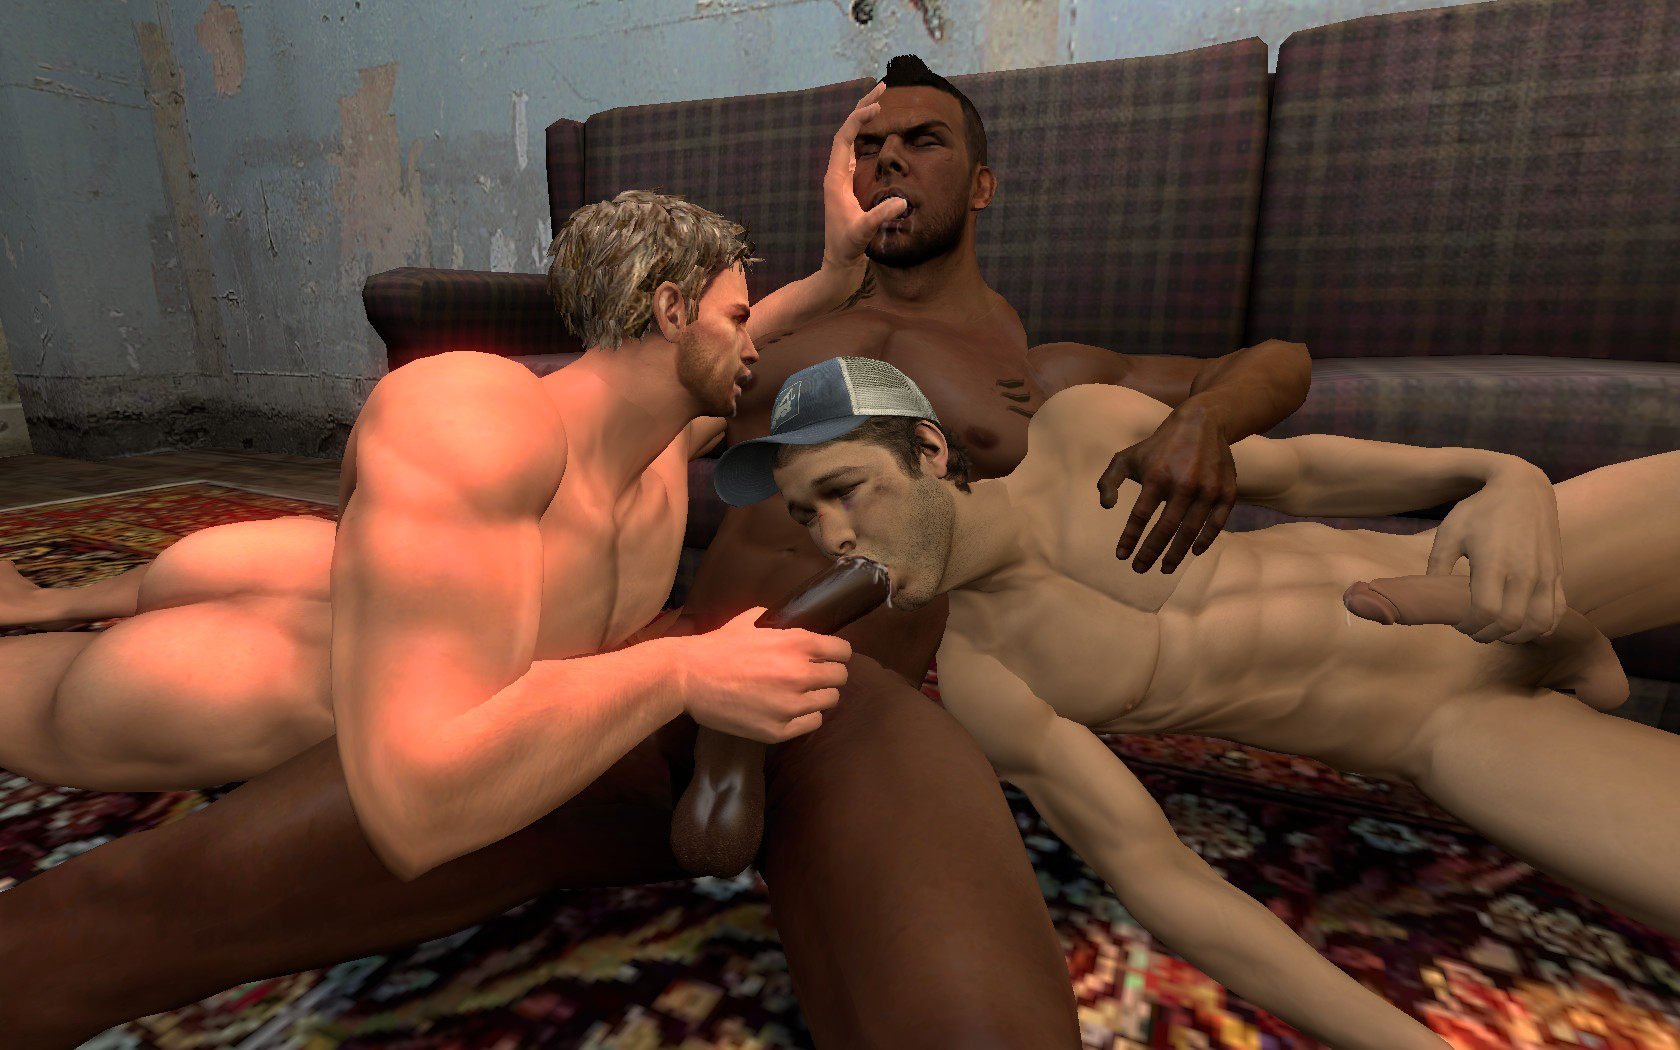 Strippers in gta 4 topless sex image